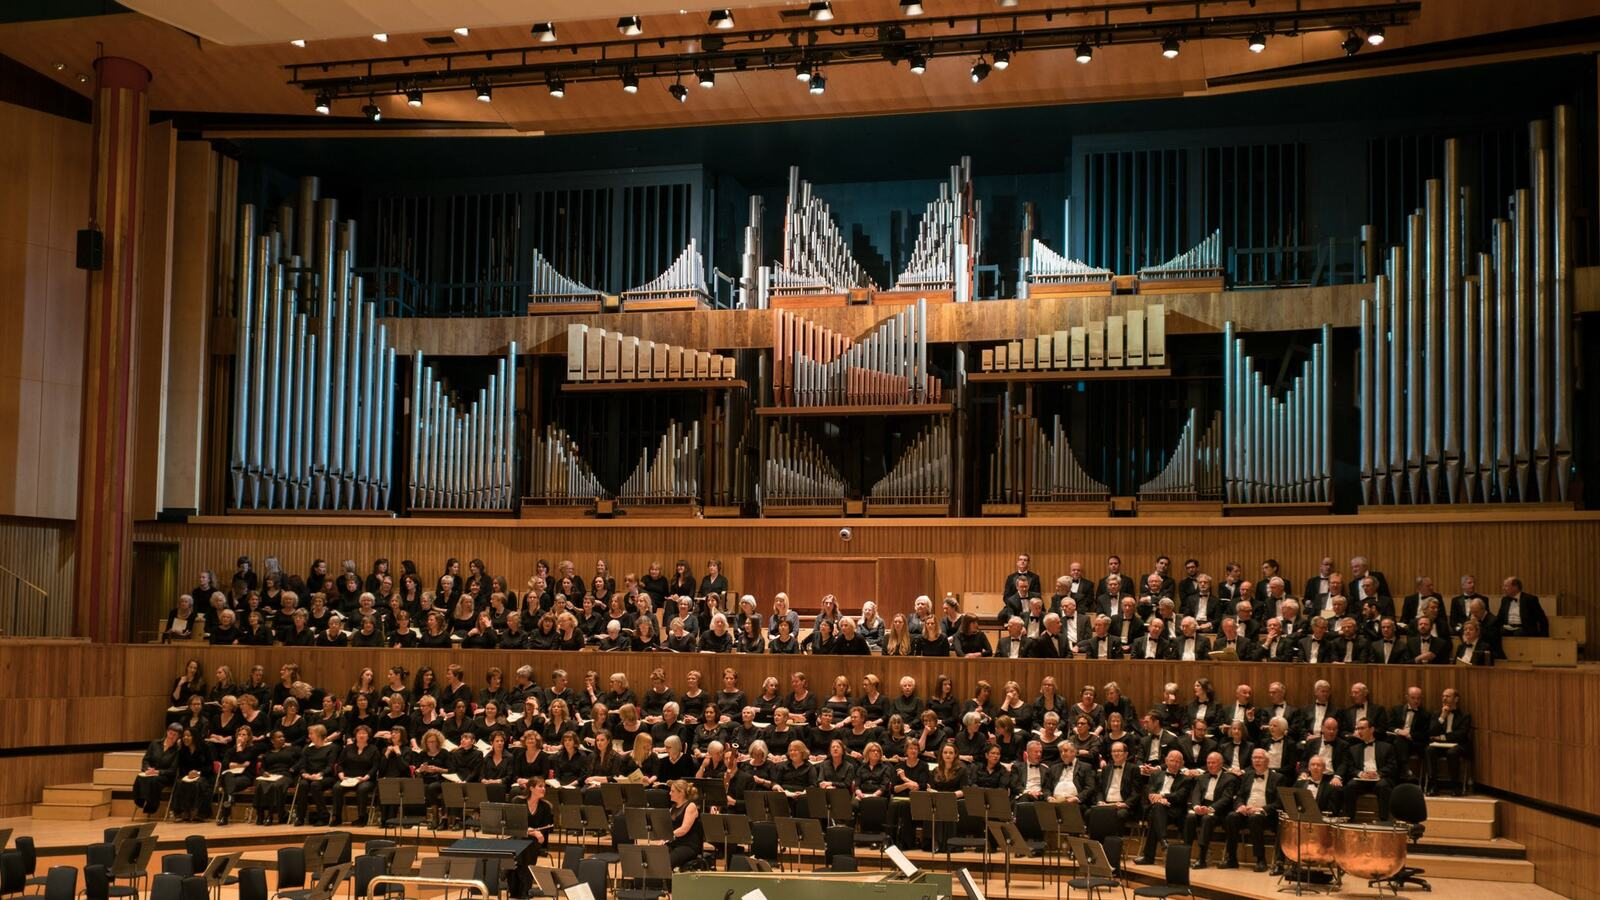 Barts Choir on stage at Royal Festival Hall, Southbank Centre